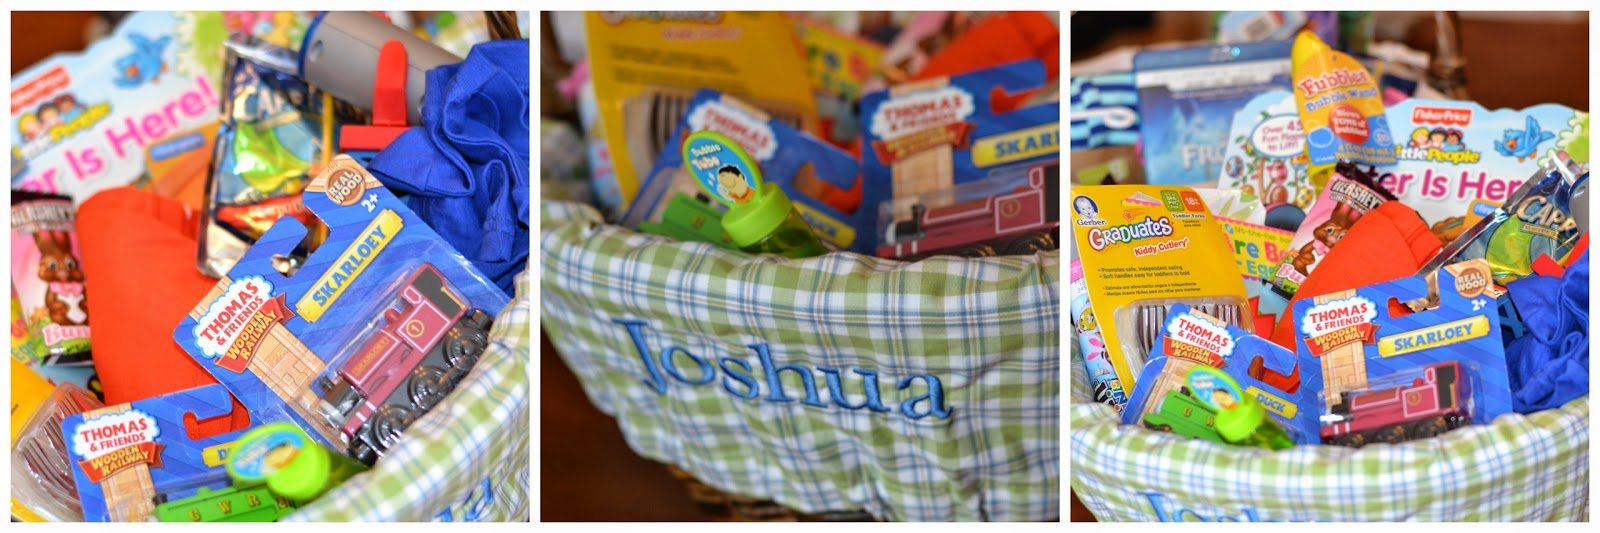 Easter basket ideas for any kid happily a housewife we have the sabrina basket and i did it in natural because i figured white would show wear over the years there are so many adorable liners to go with them negle Image collections